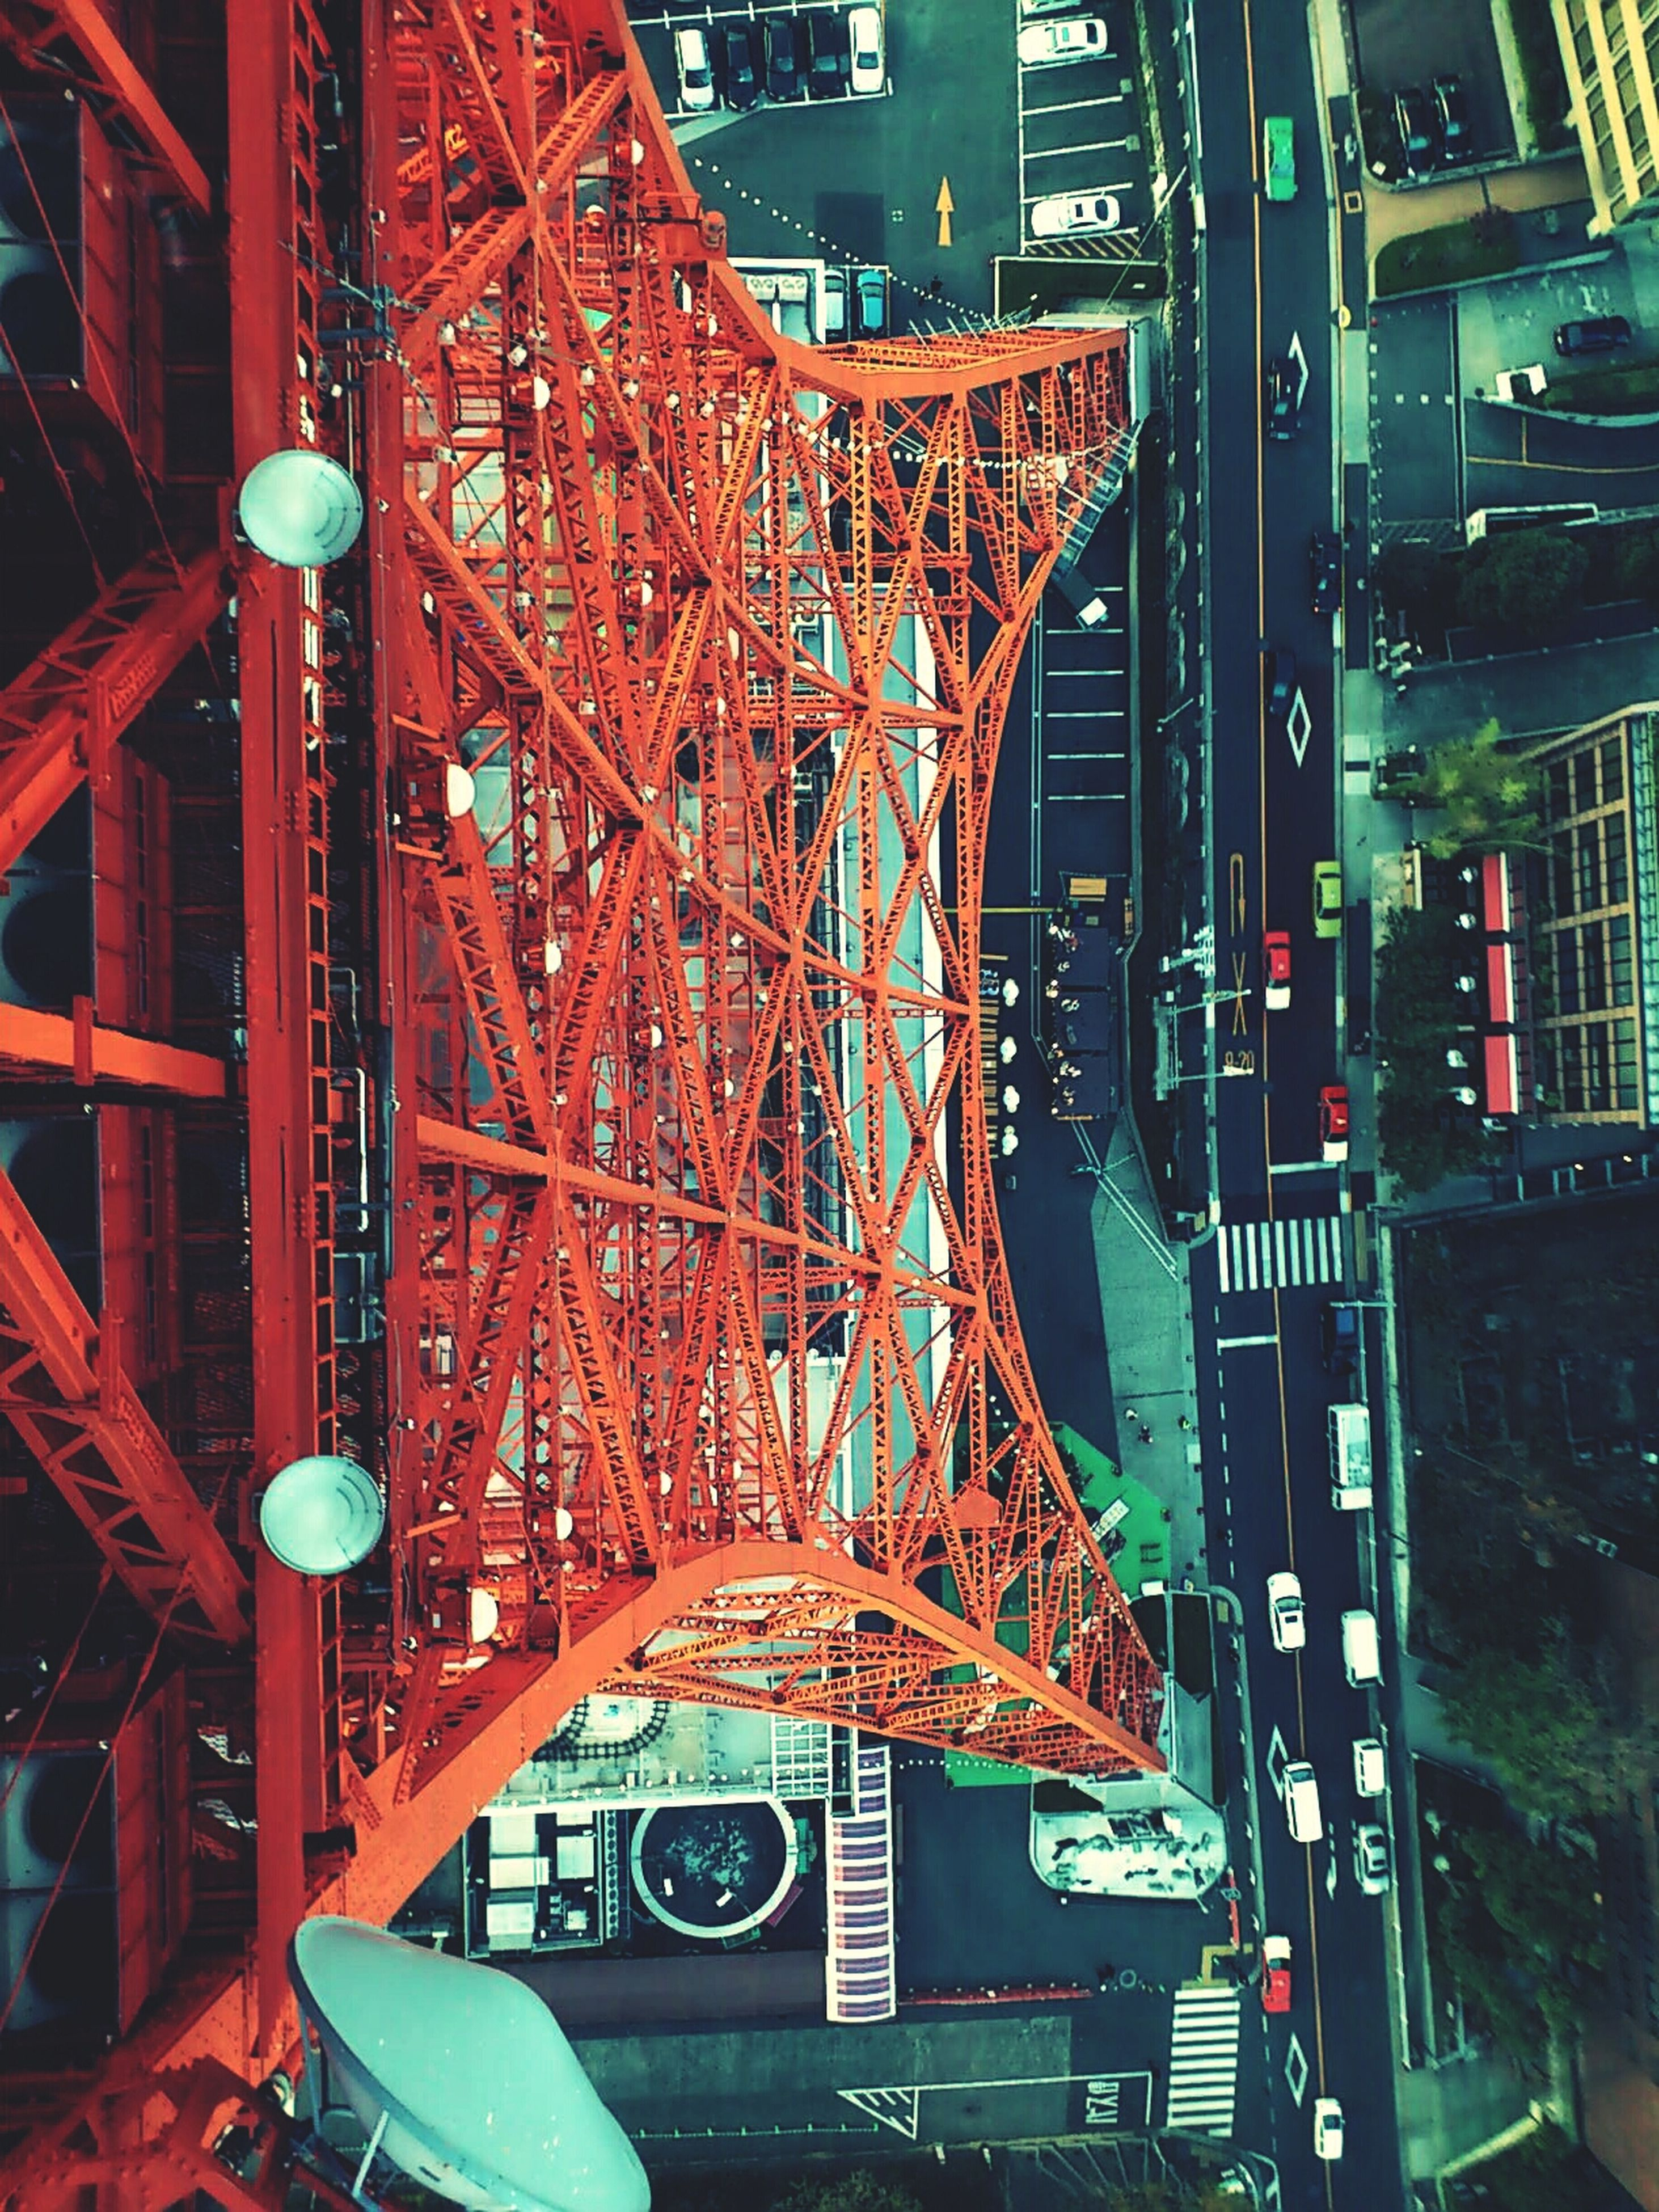 architecture, built structure, illuminated, building exterior, city, transportation, bridge - man made structure, famous place, travel destinations, engineering, connection, night, capital cities, travel, metal, international landmark, high angle view, tourism, red, outdoors